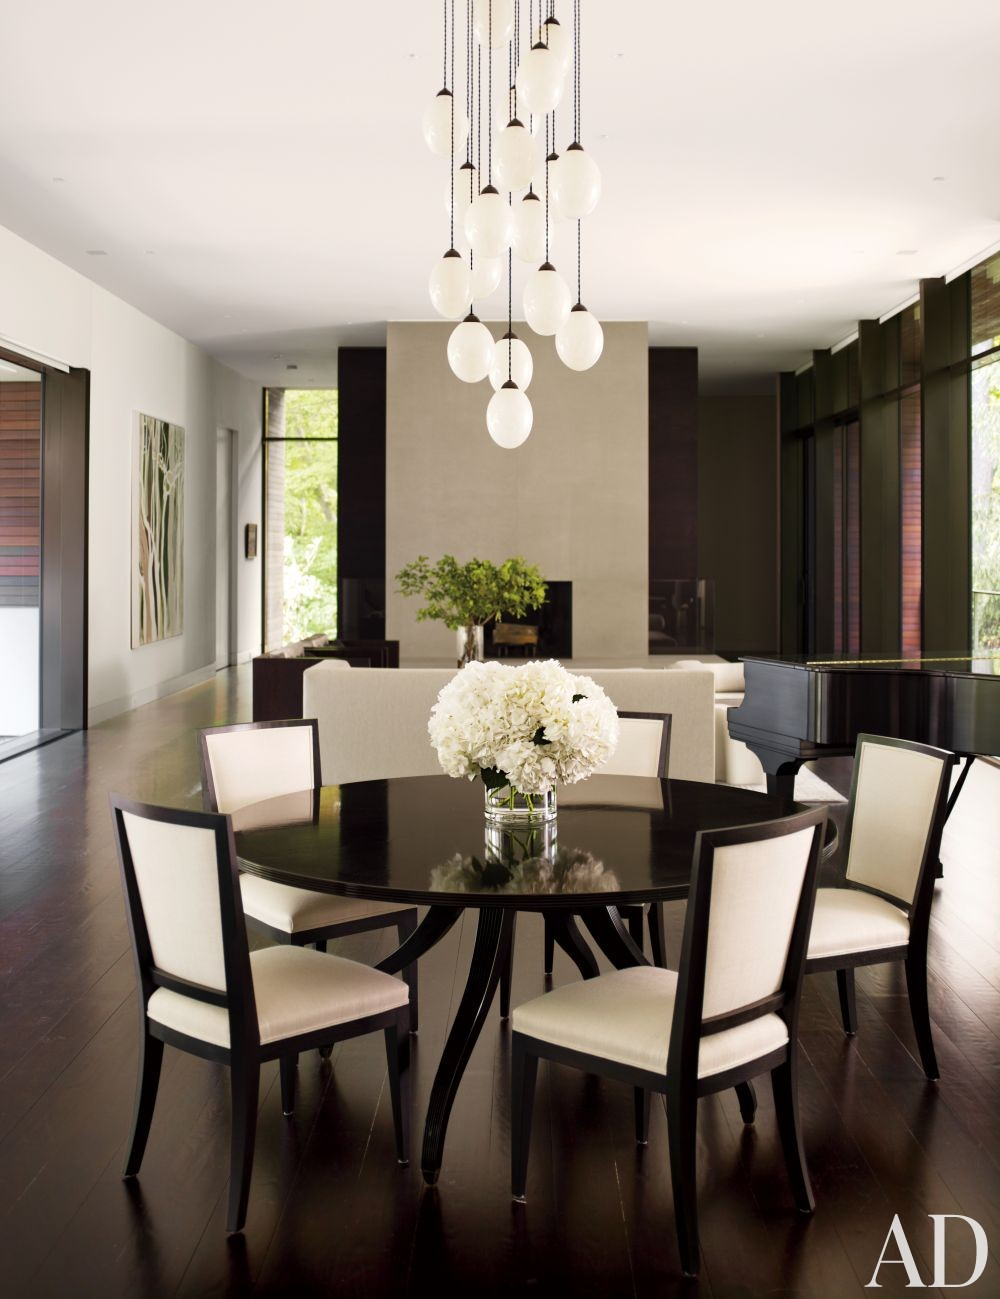 Modern Dining Room by Carrier and Co. Interiors and Specht Harpman Architects in New Canaan, Connecticut